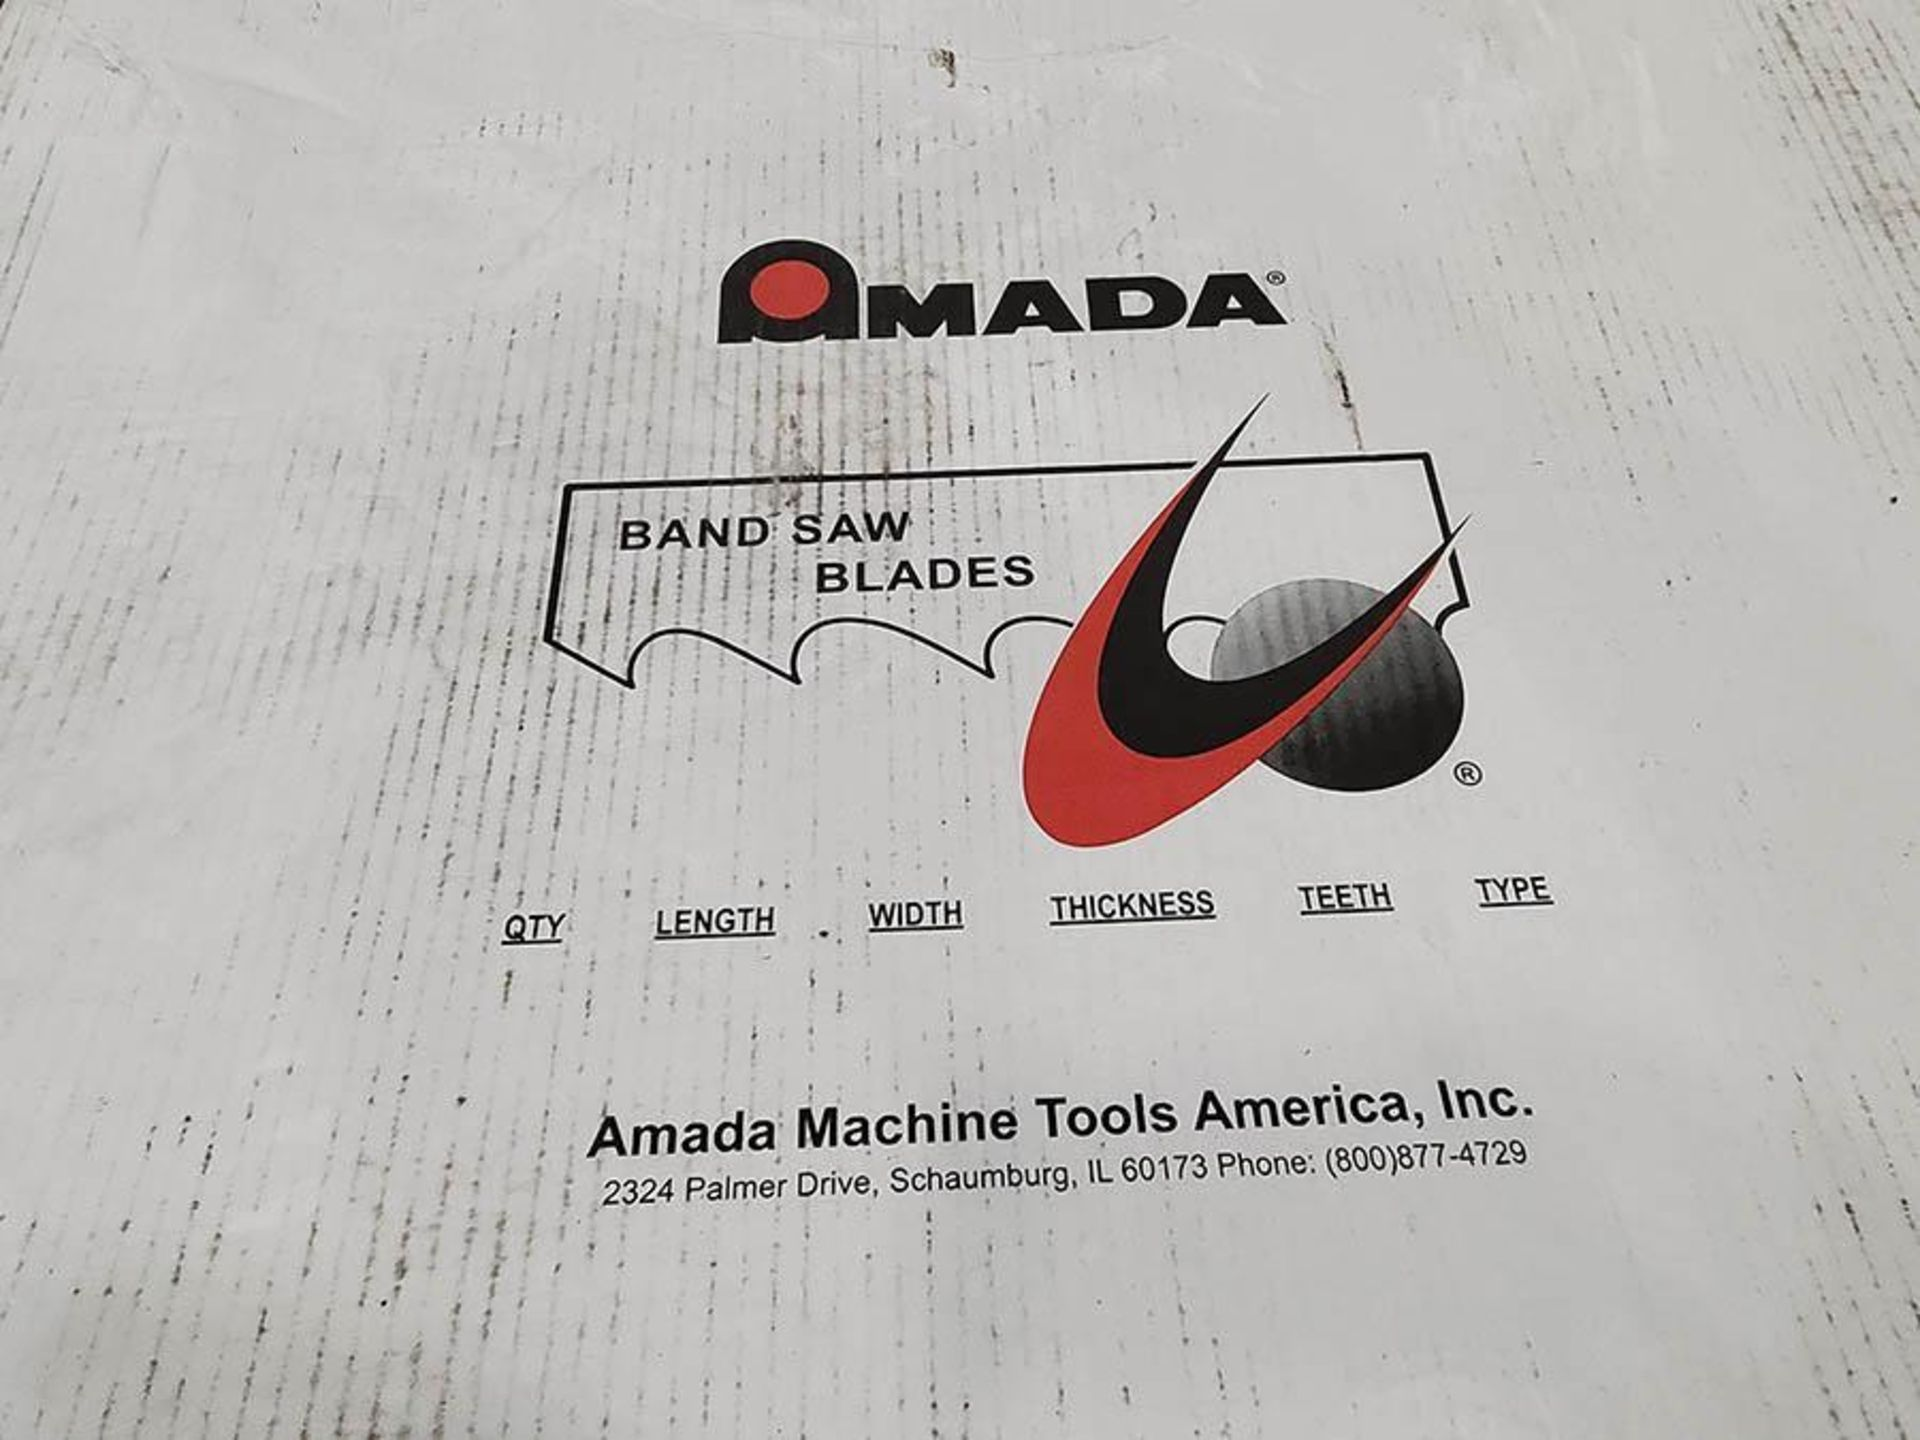 LOT ON PALLET, AMADA BANDSAW BLADES 29FT X 2 5 8IN - Image 2 of 4